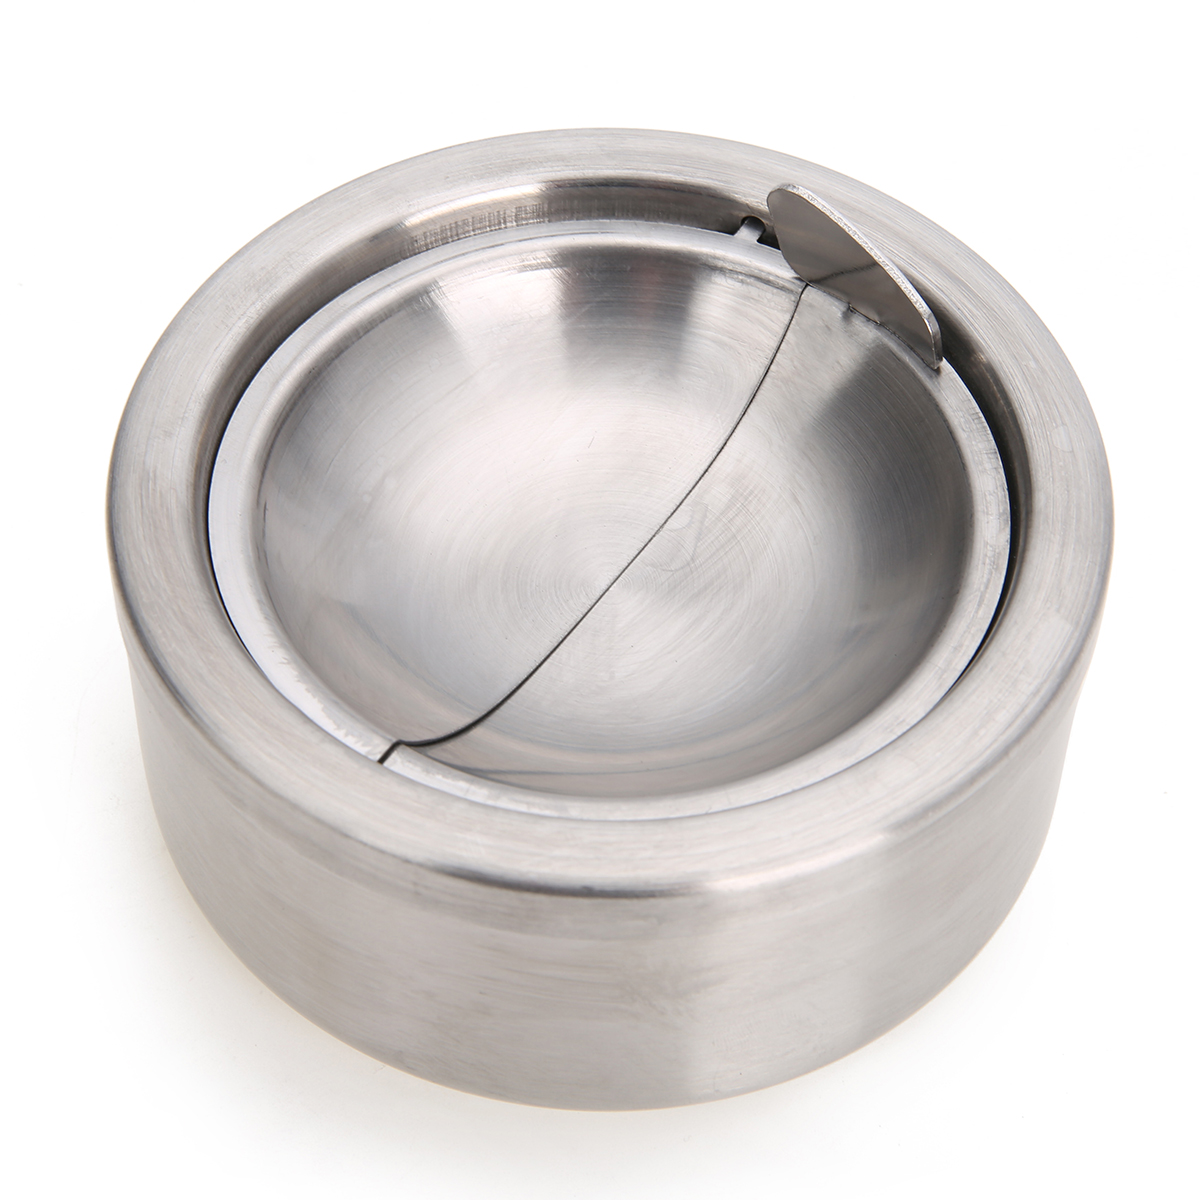 1pc Cigarette Lidded Ashtray Stainless Steel Silver Windproof Ashtray With Lid Round Shape Smoking Ash Tray